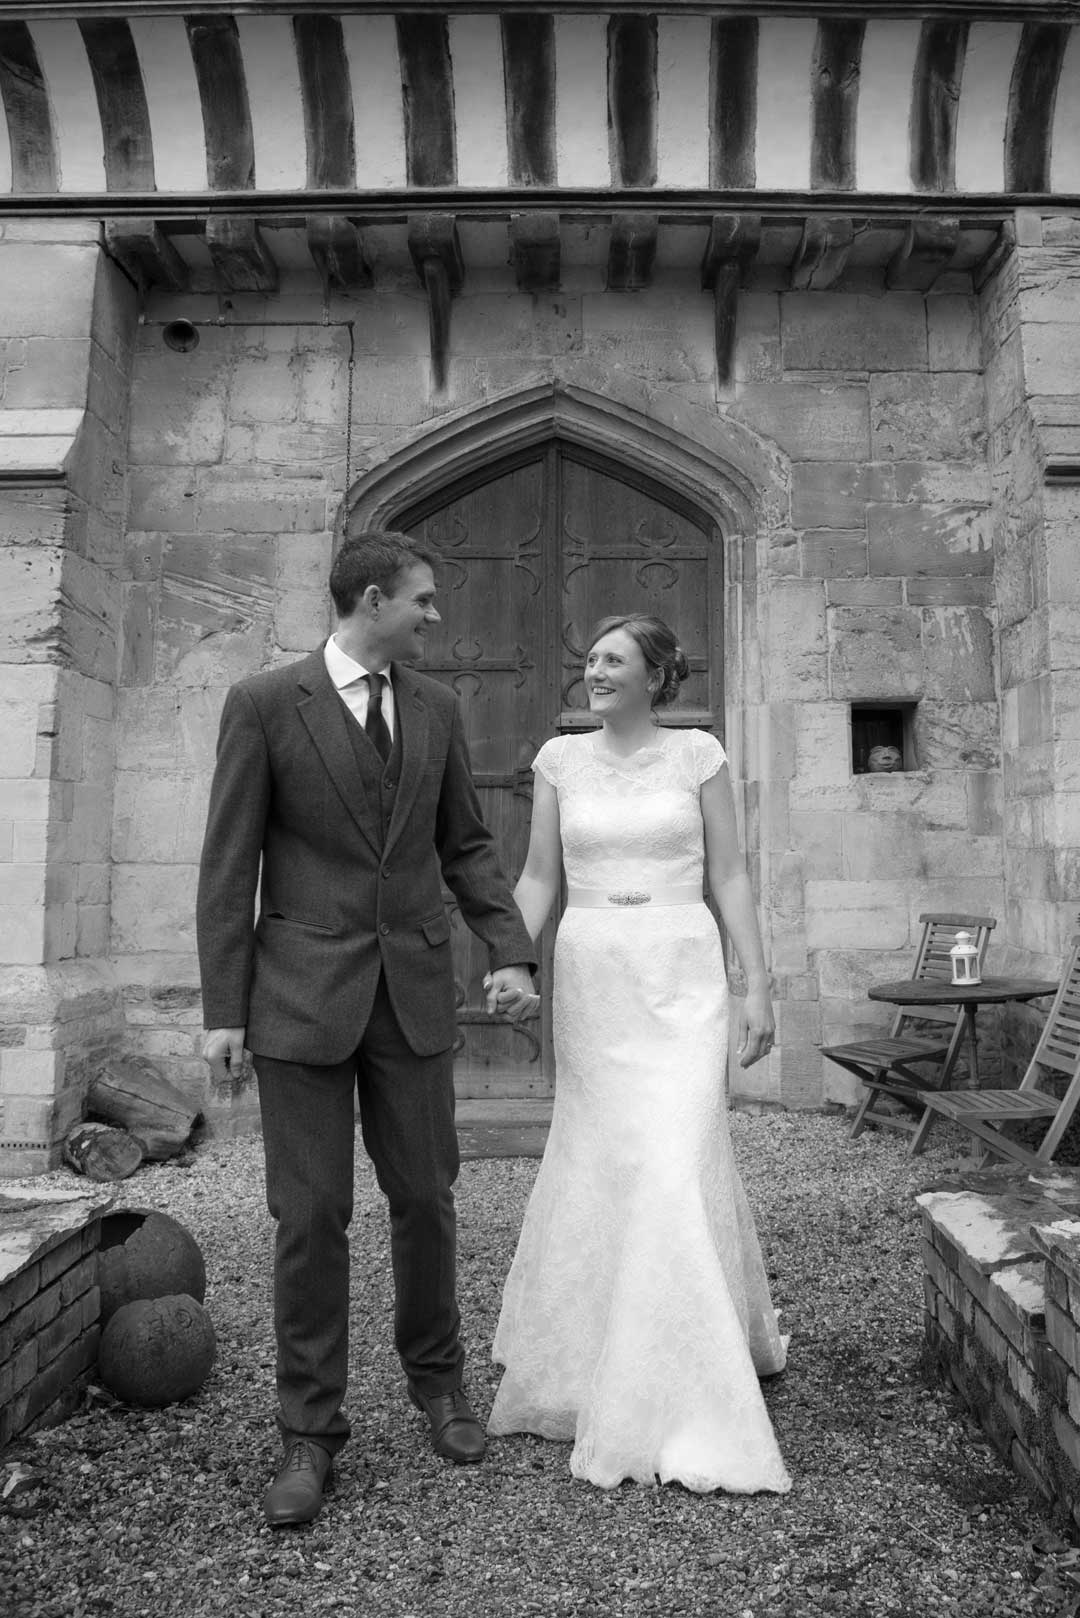 wedding couple black and white photography in front of medival building at Priors Tithe Barn in Brockworth Goucester